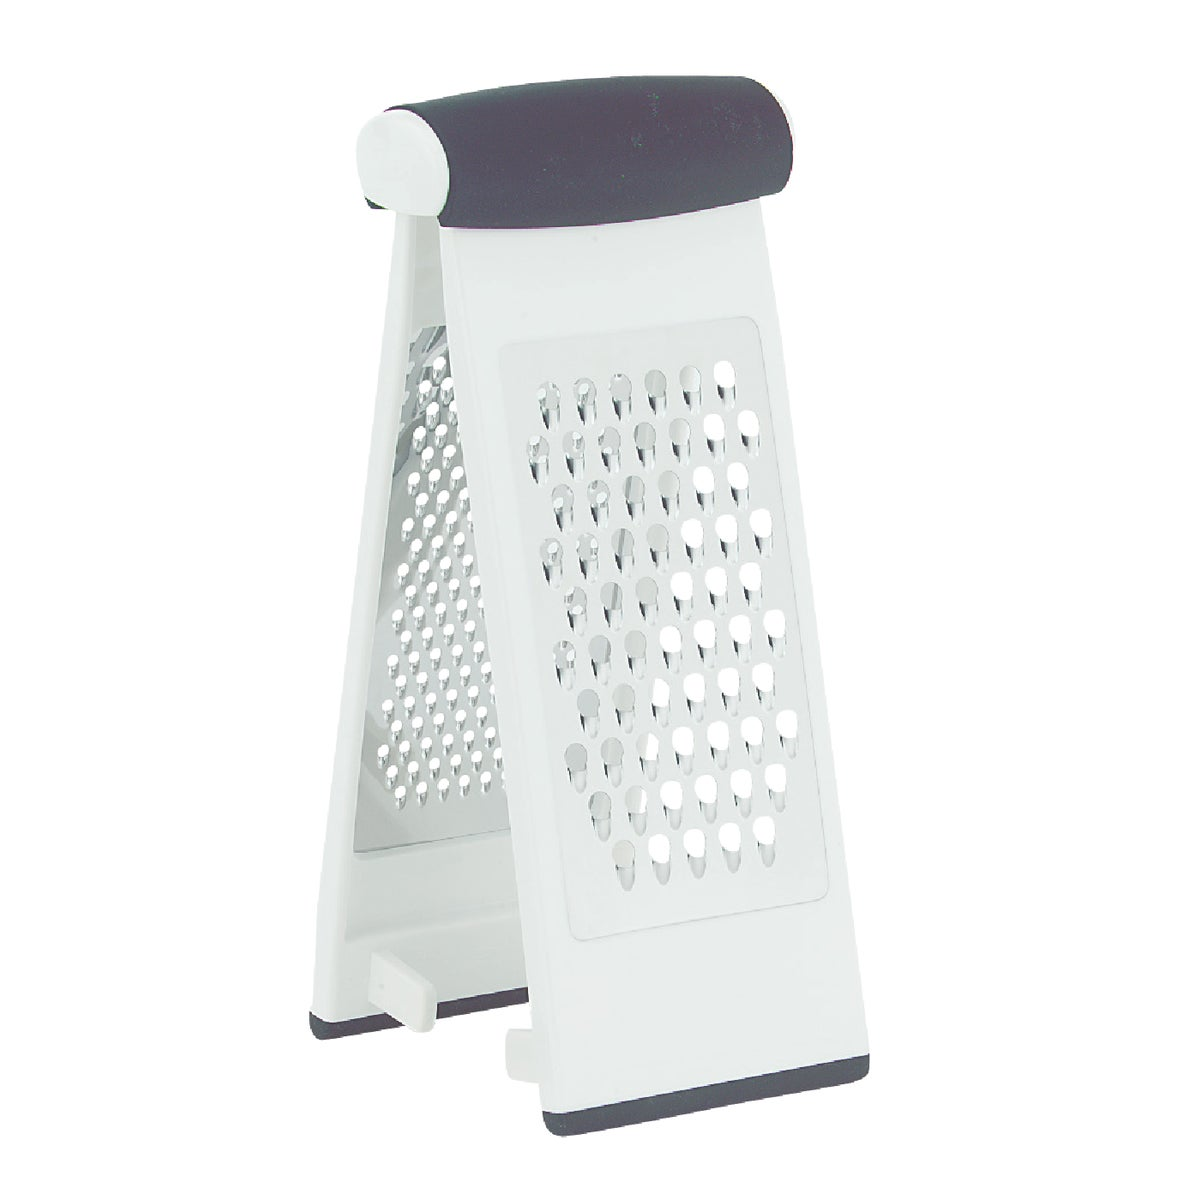 MULTI GRATER - 32780 by Oxo International